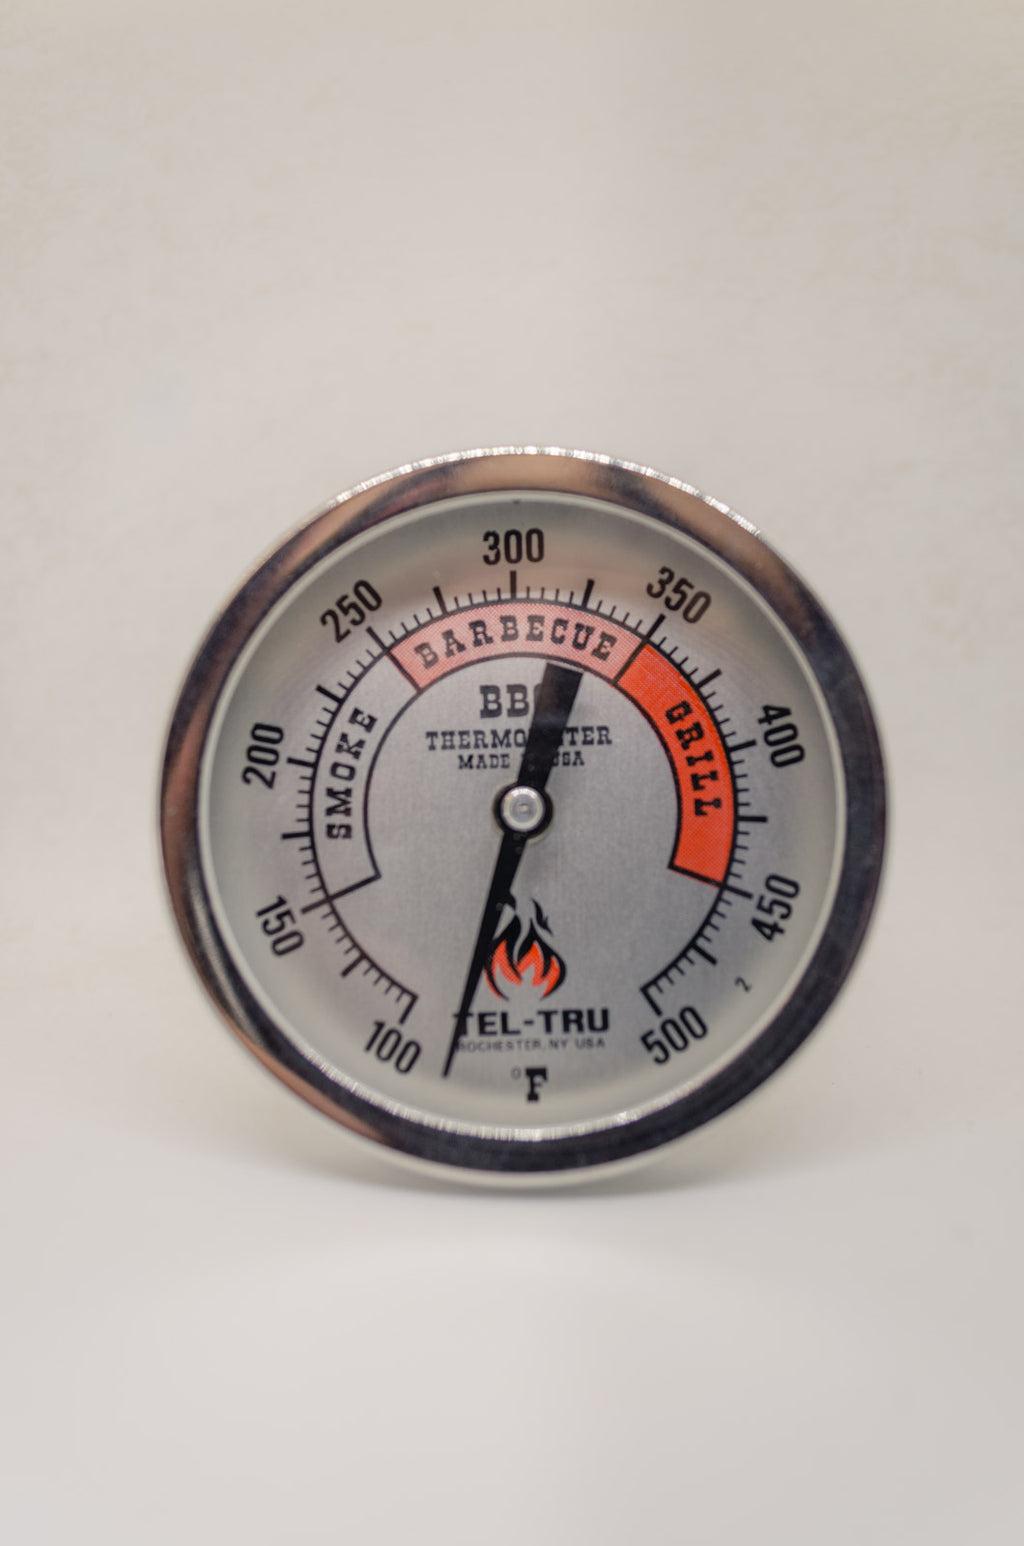 tel-tru thermometer for sale